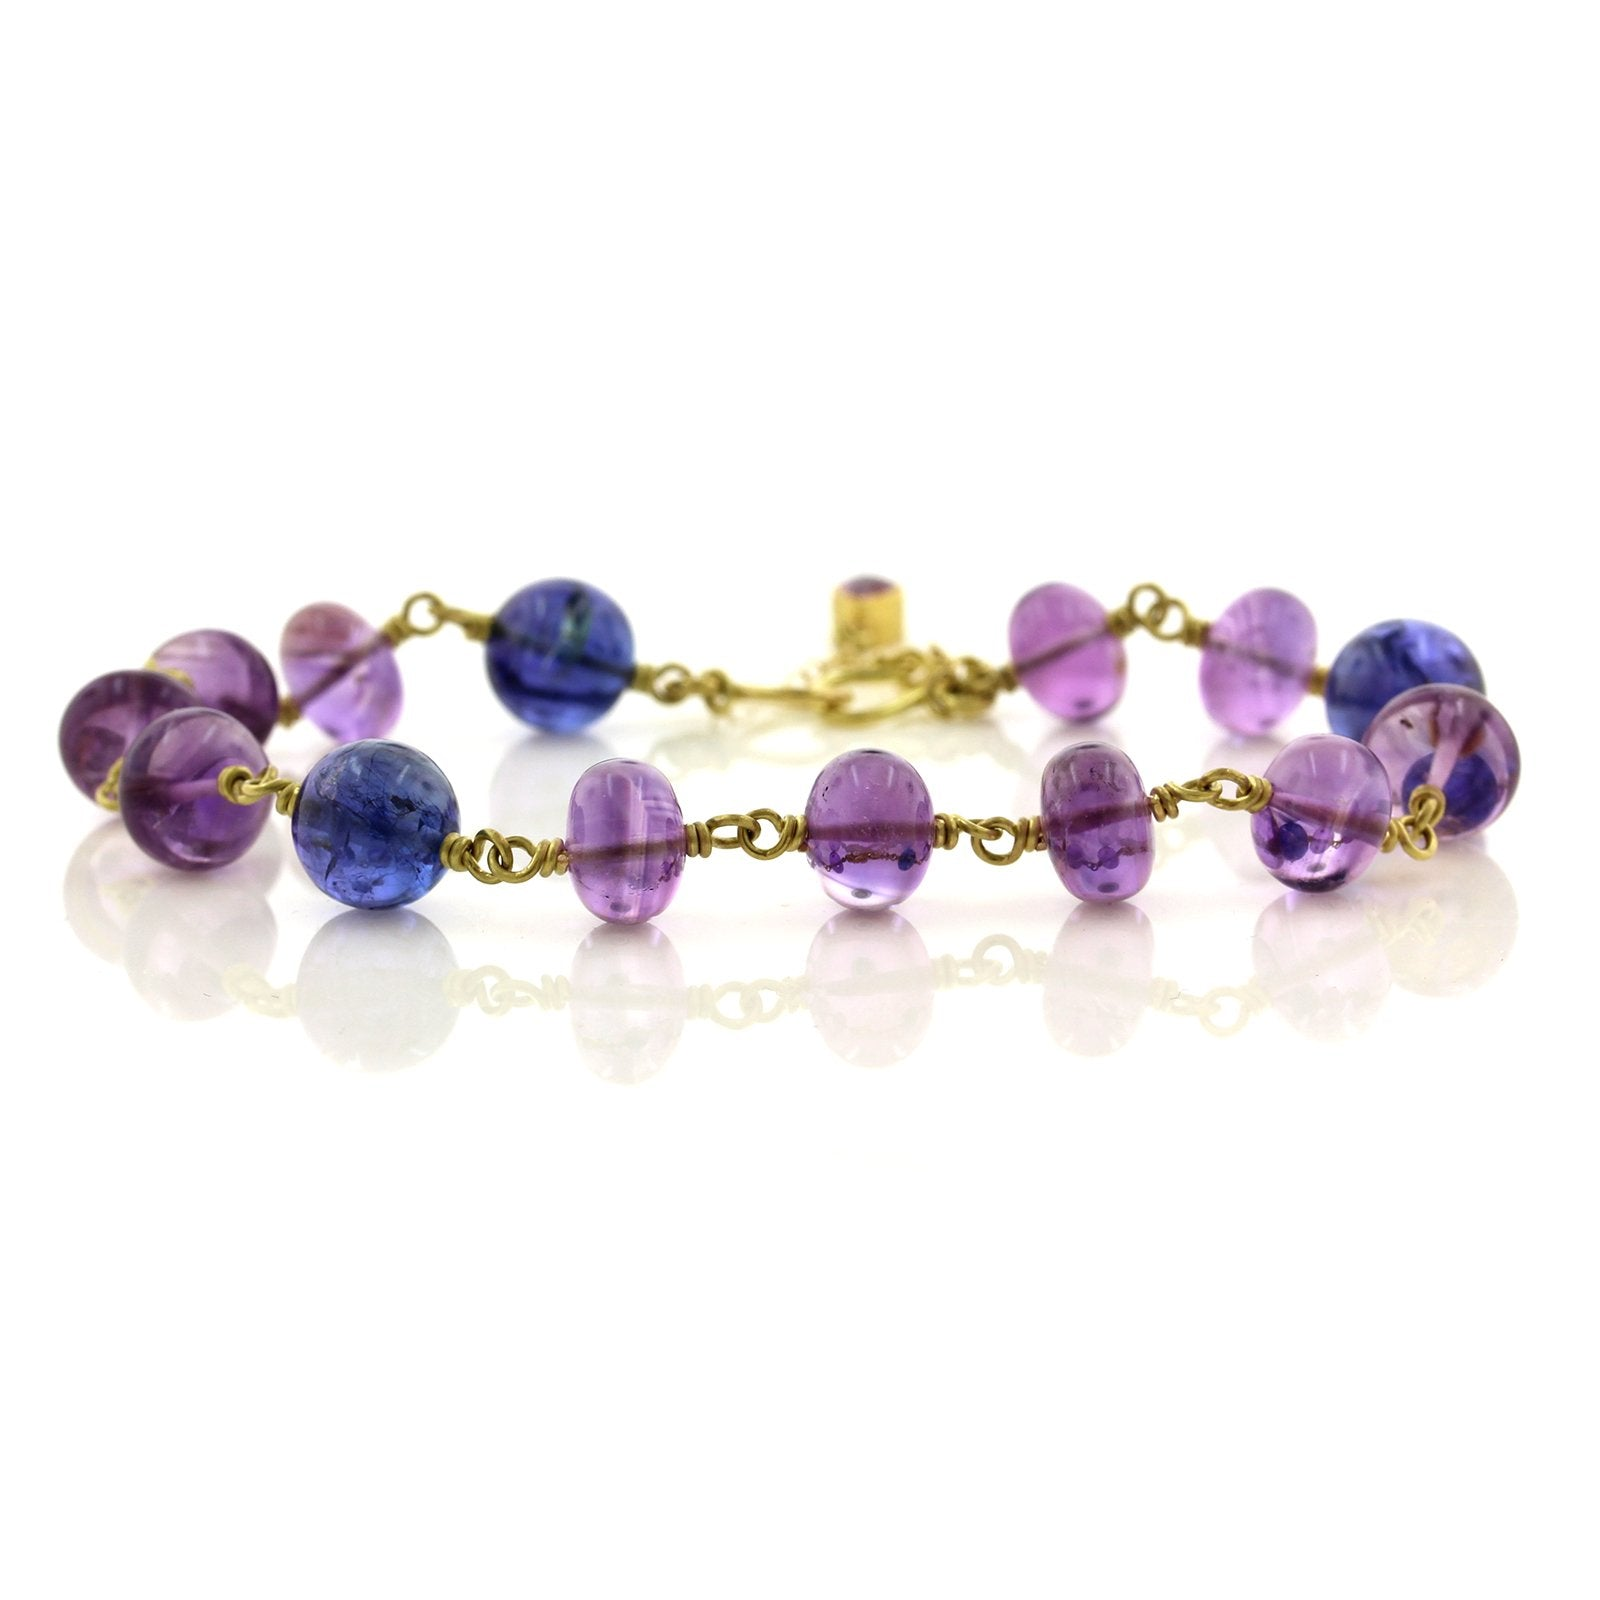 18/22K Yellow Gold Amethyst and Tanzanite Bracelet